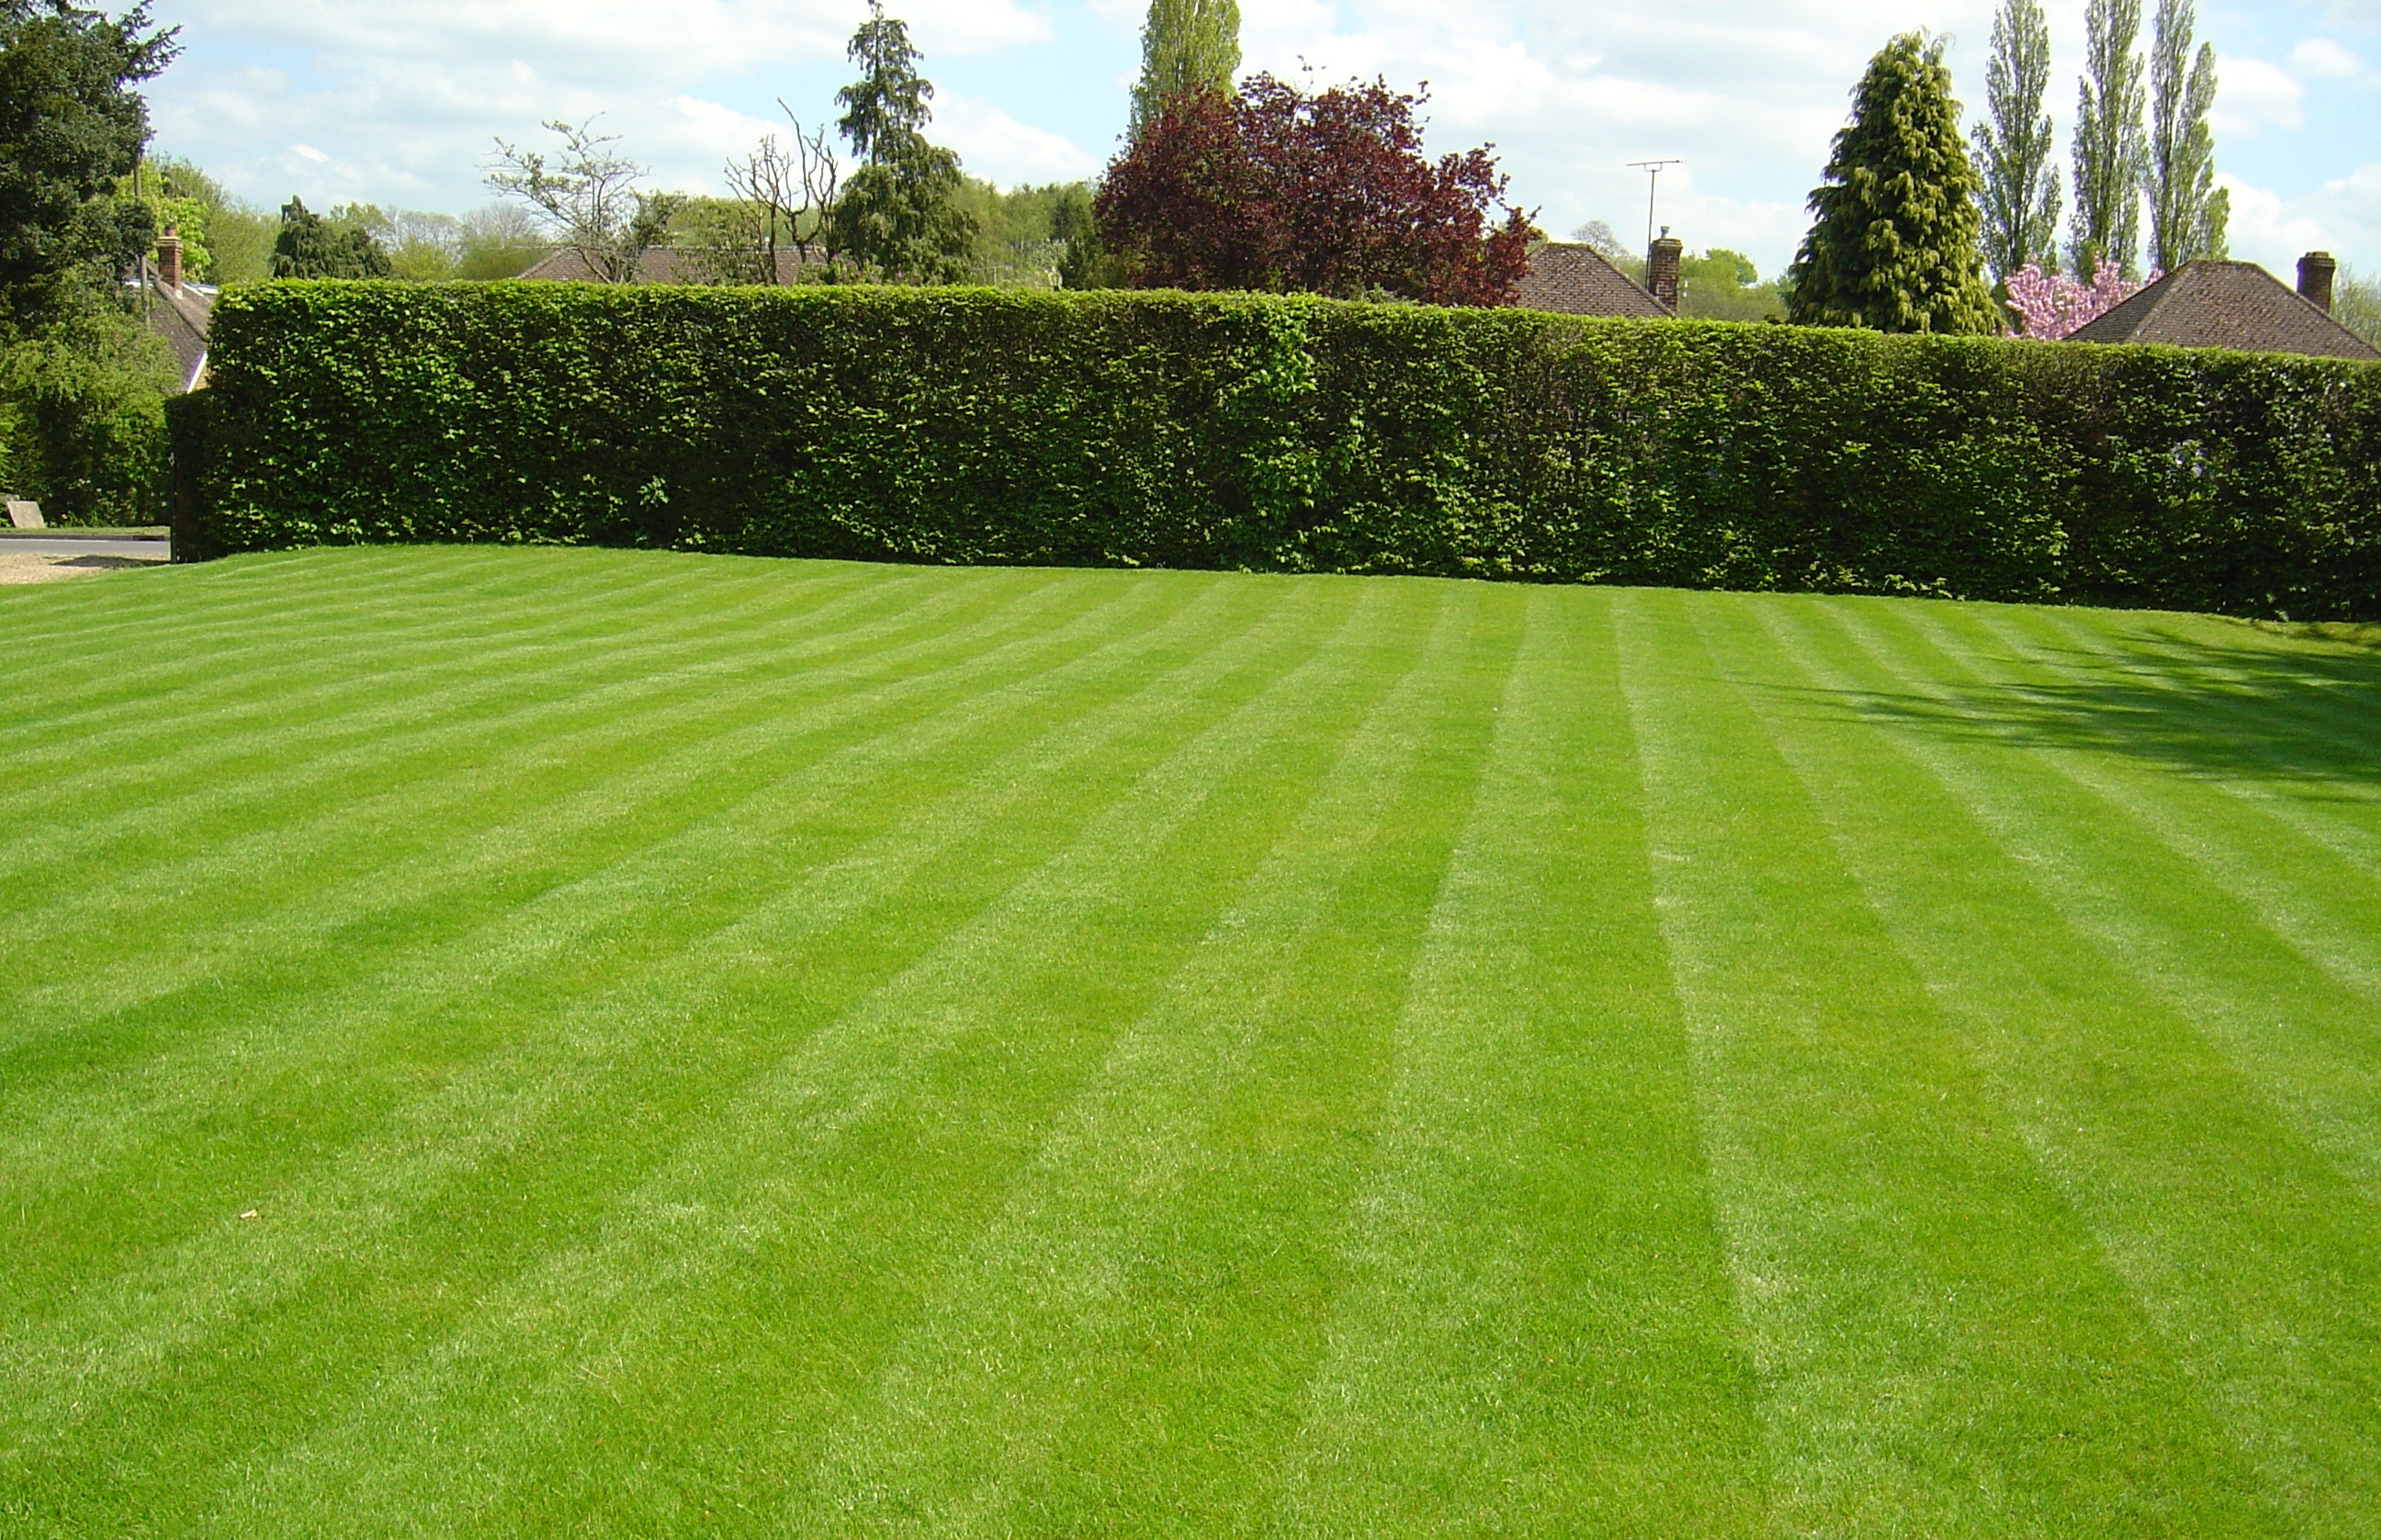 Lawn care vertopia gardens for Lawn care and maintenance